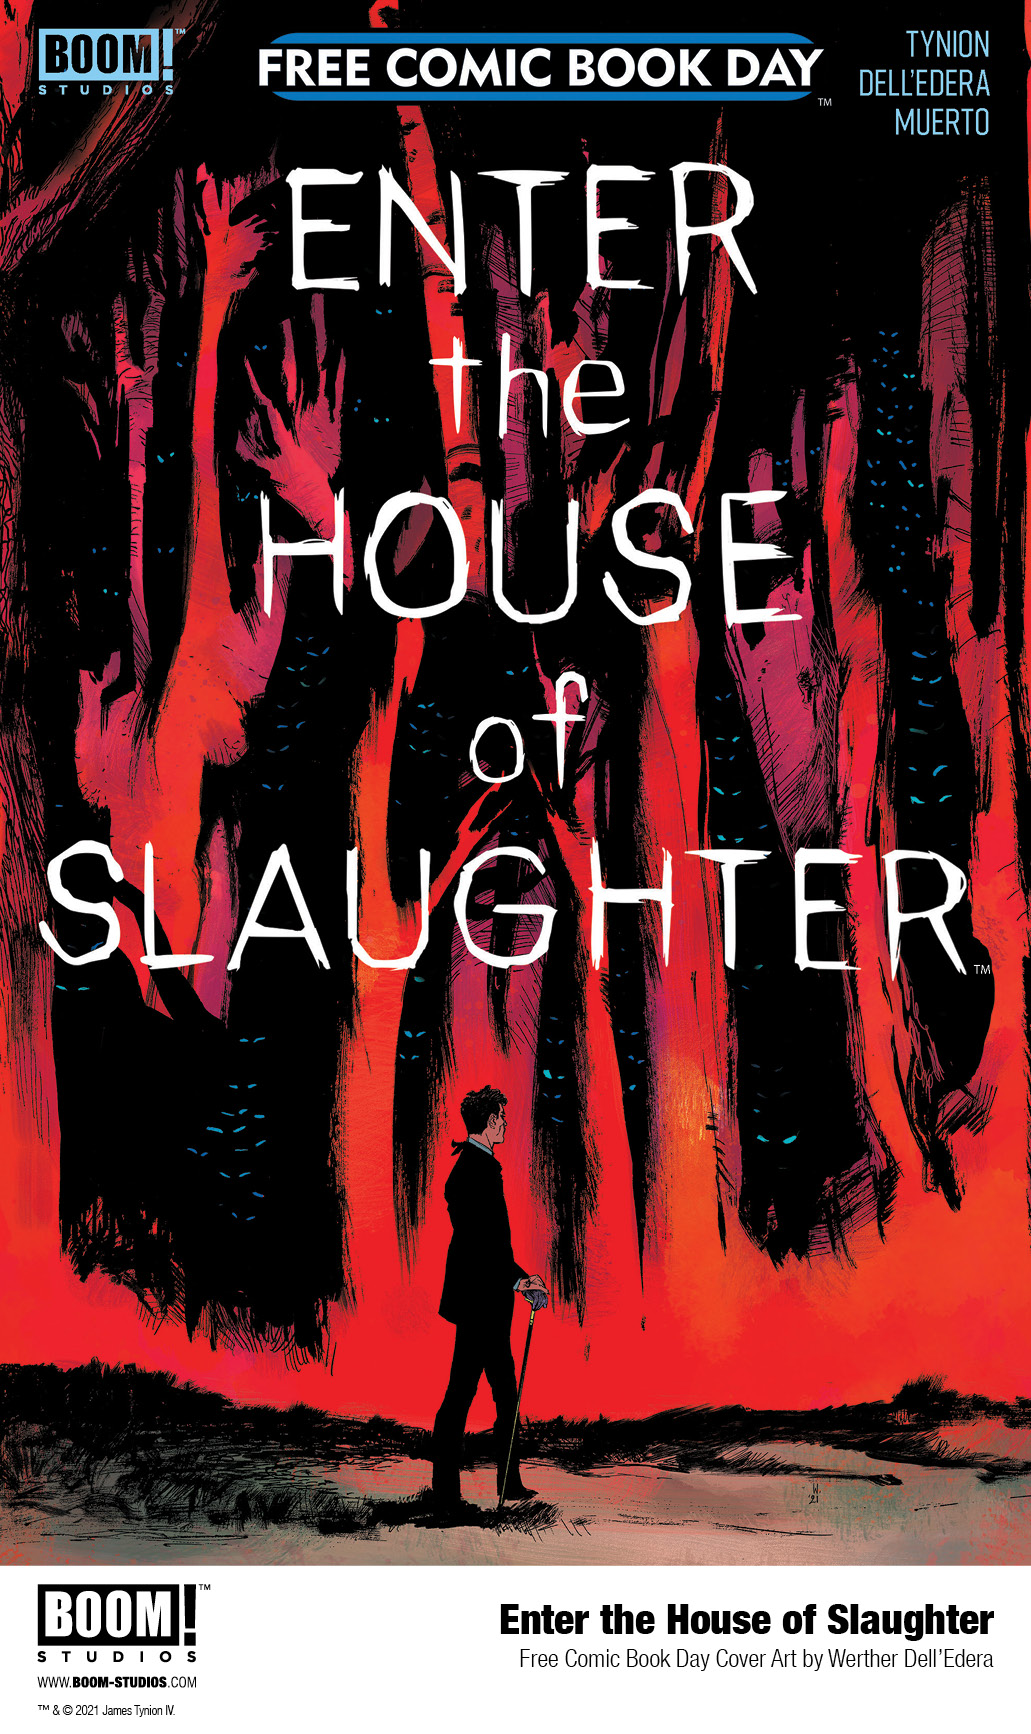 fe9a1ef5-e7de-42a4-9e39-26d632c04672 ENTER THE HOUSE OF SLAUGHTER 2021 FCBD SPECIAL cover revealed